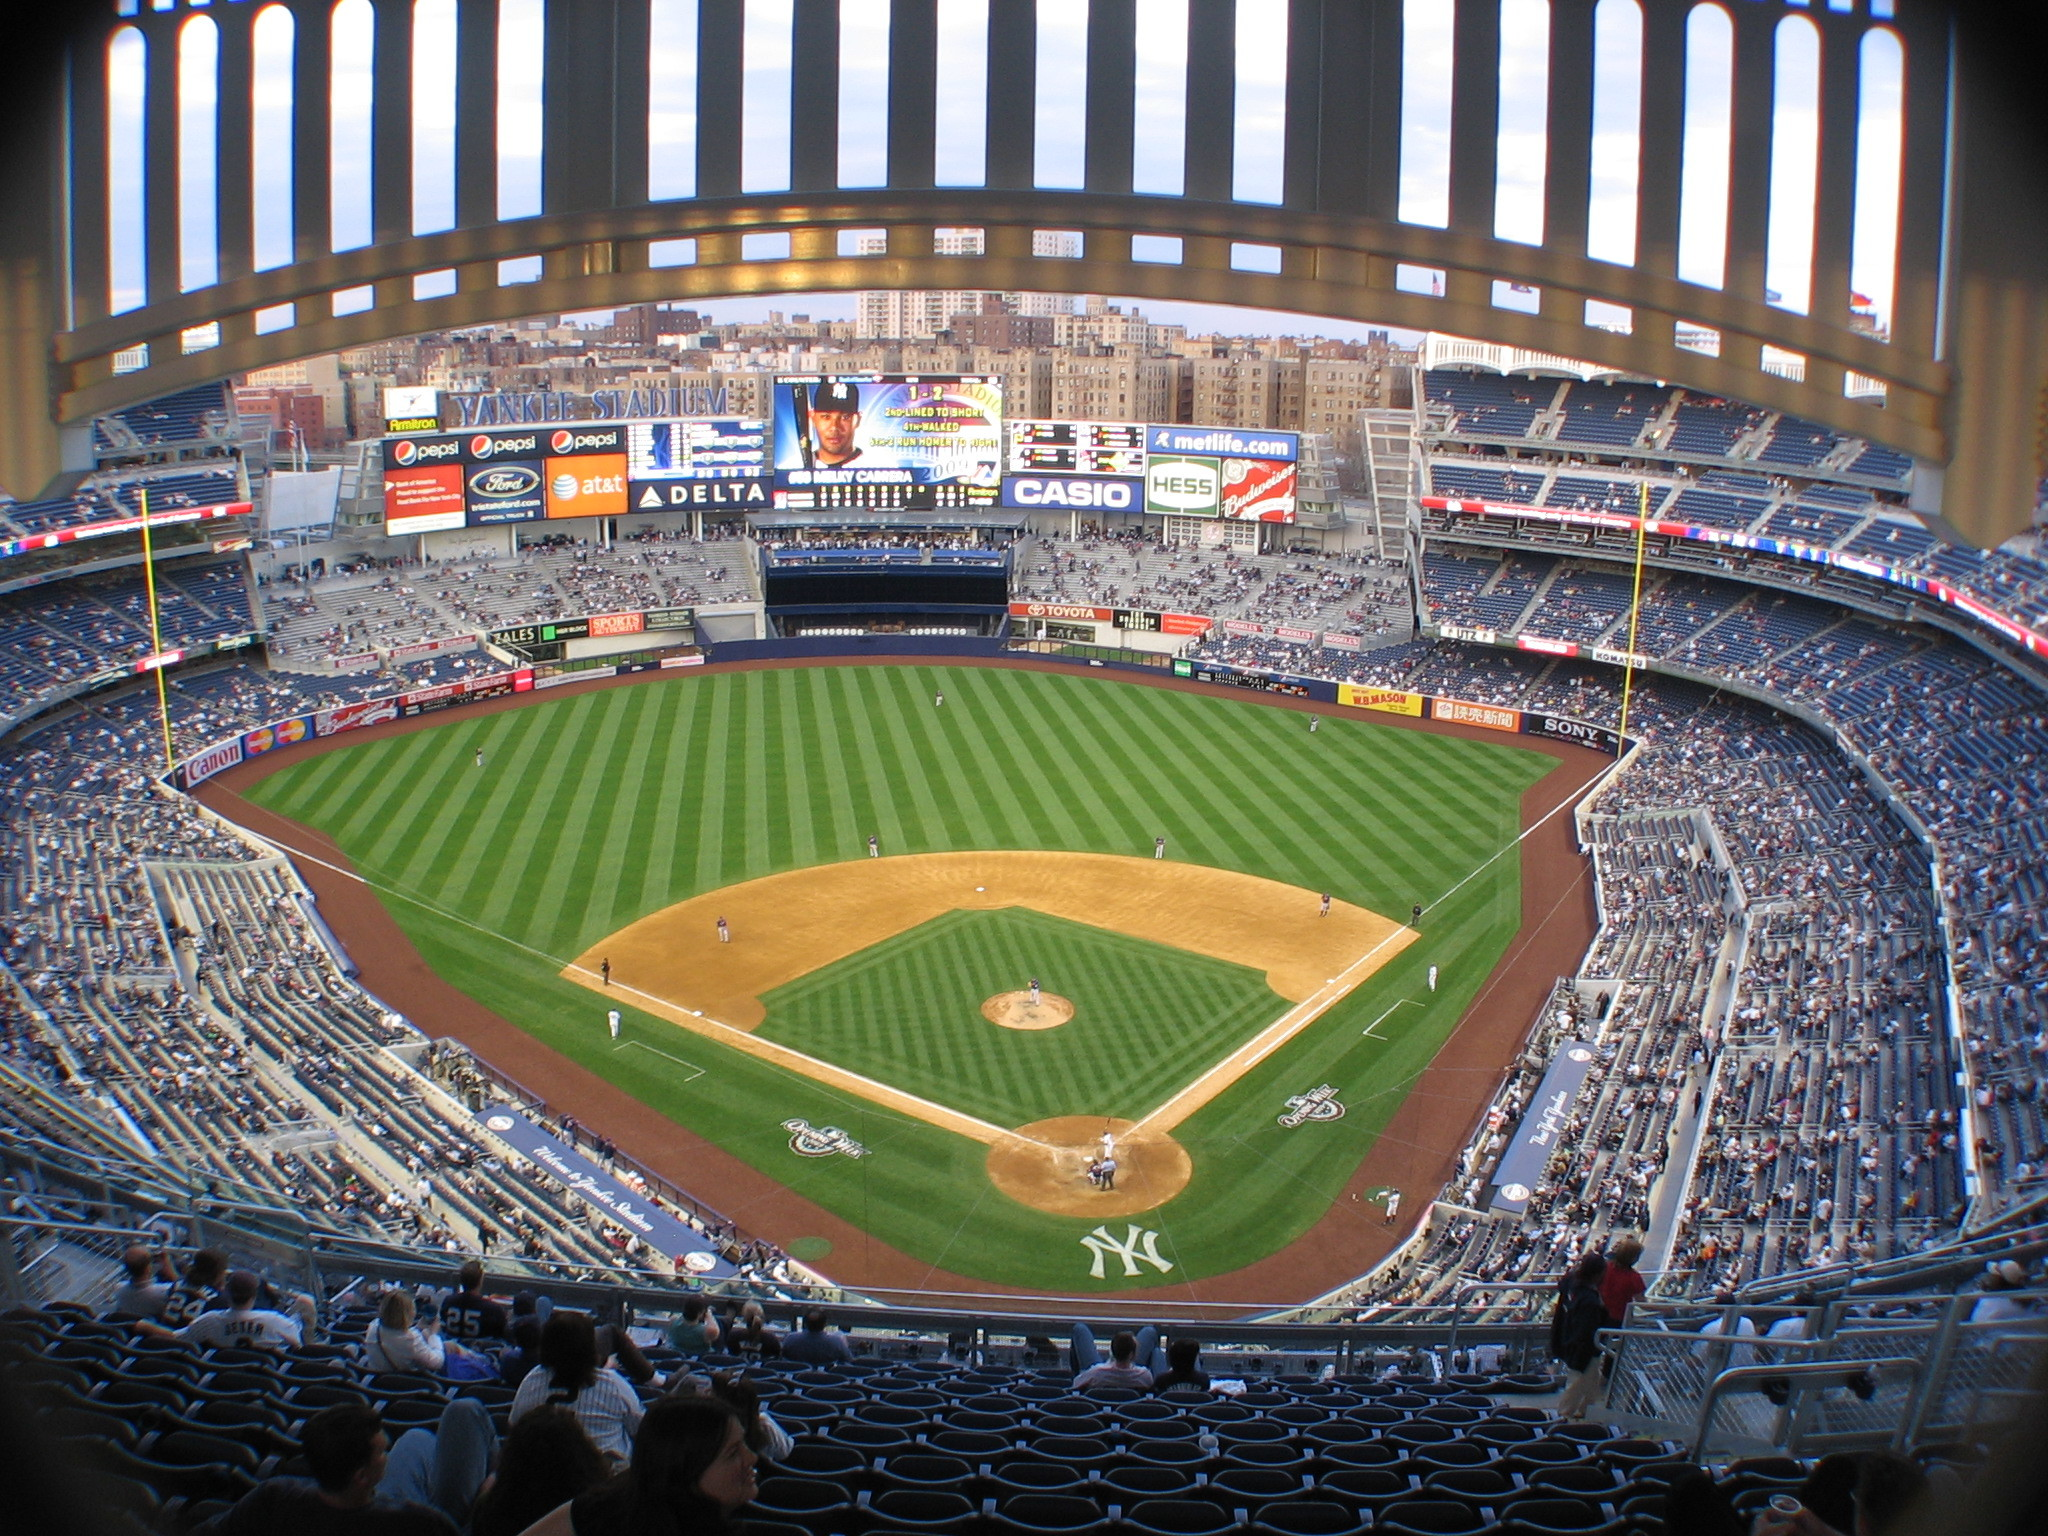 yankee stadium wallpaper 2018 64 images